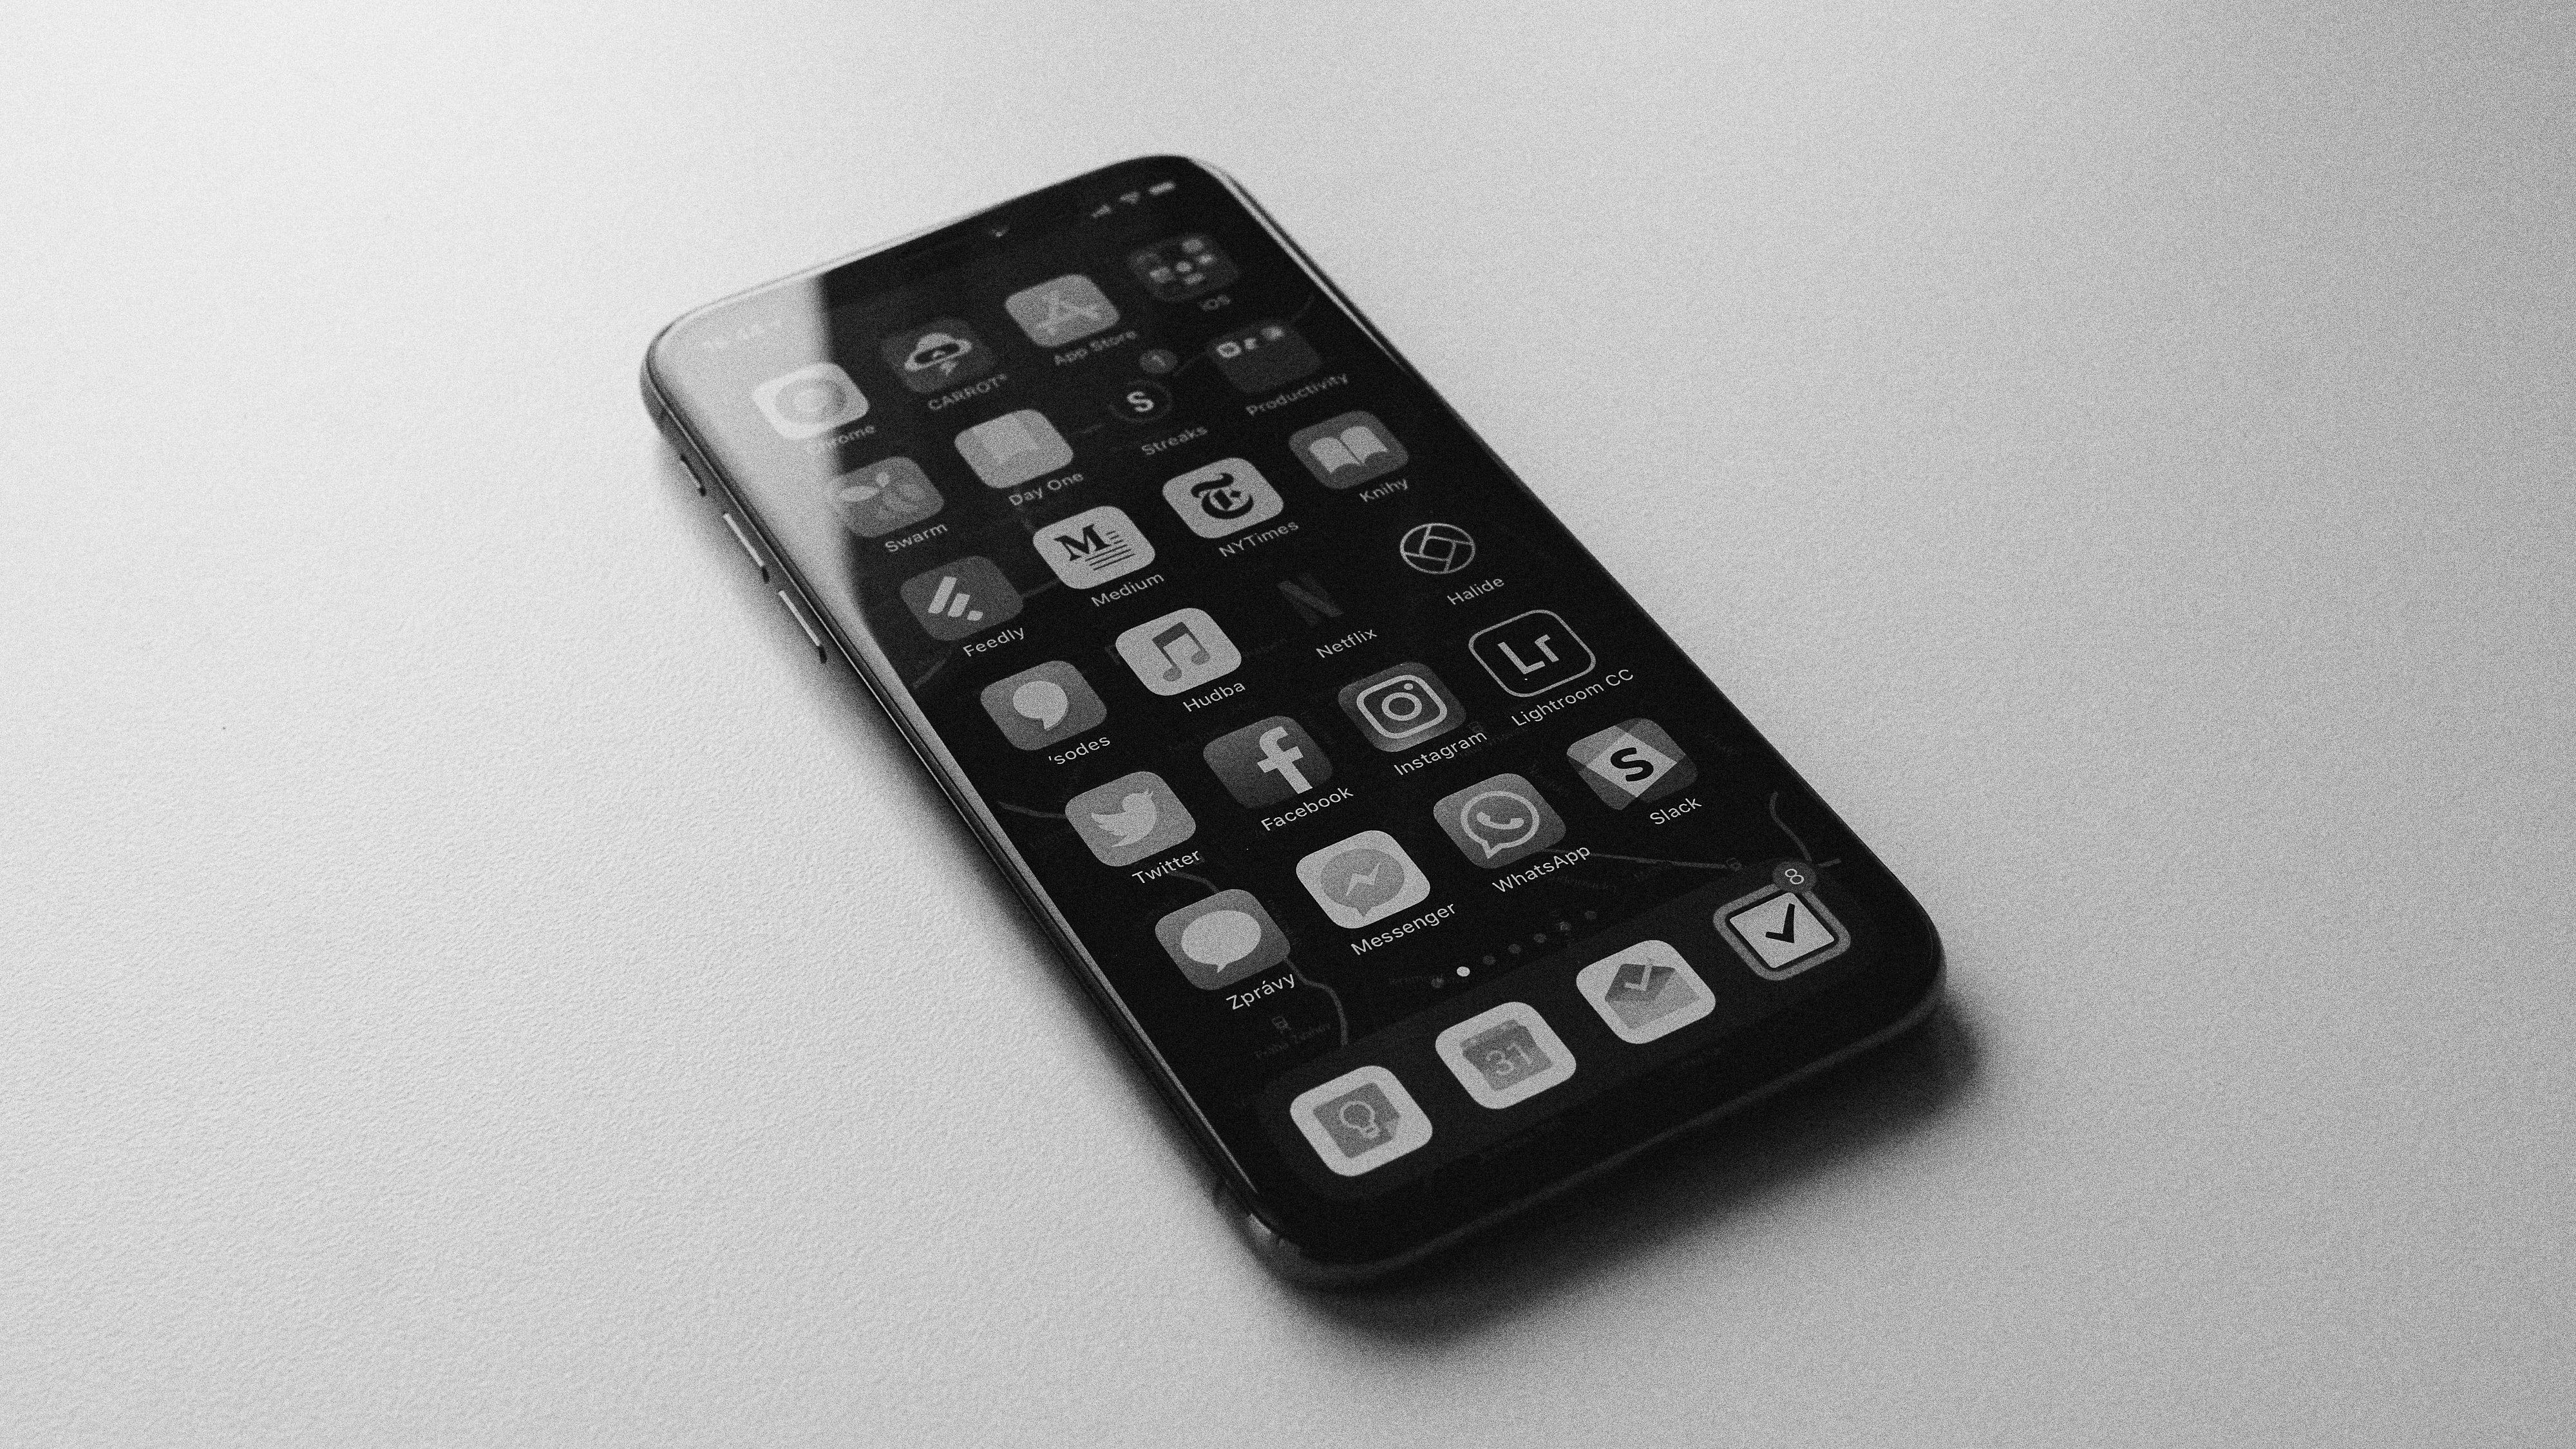 A black and white image of a smartphone with app icons on screen